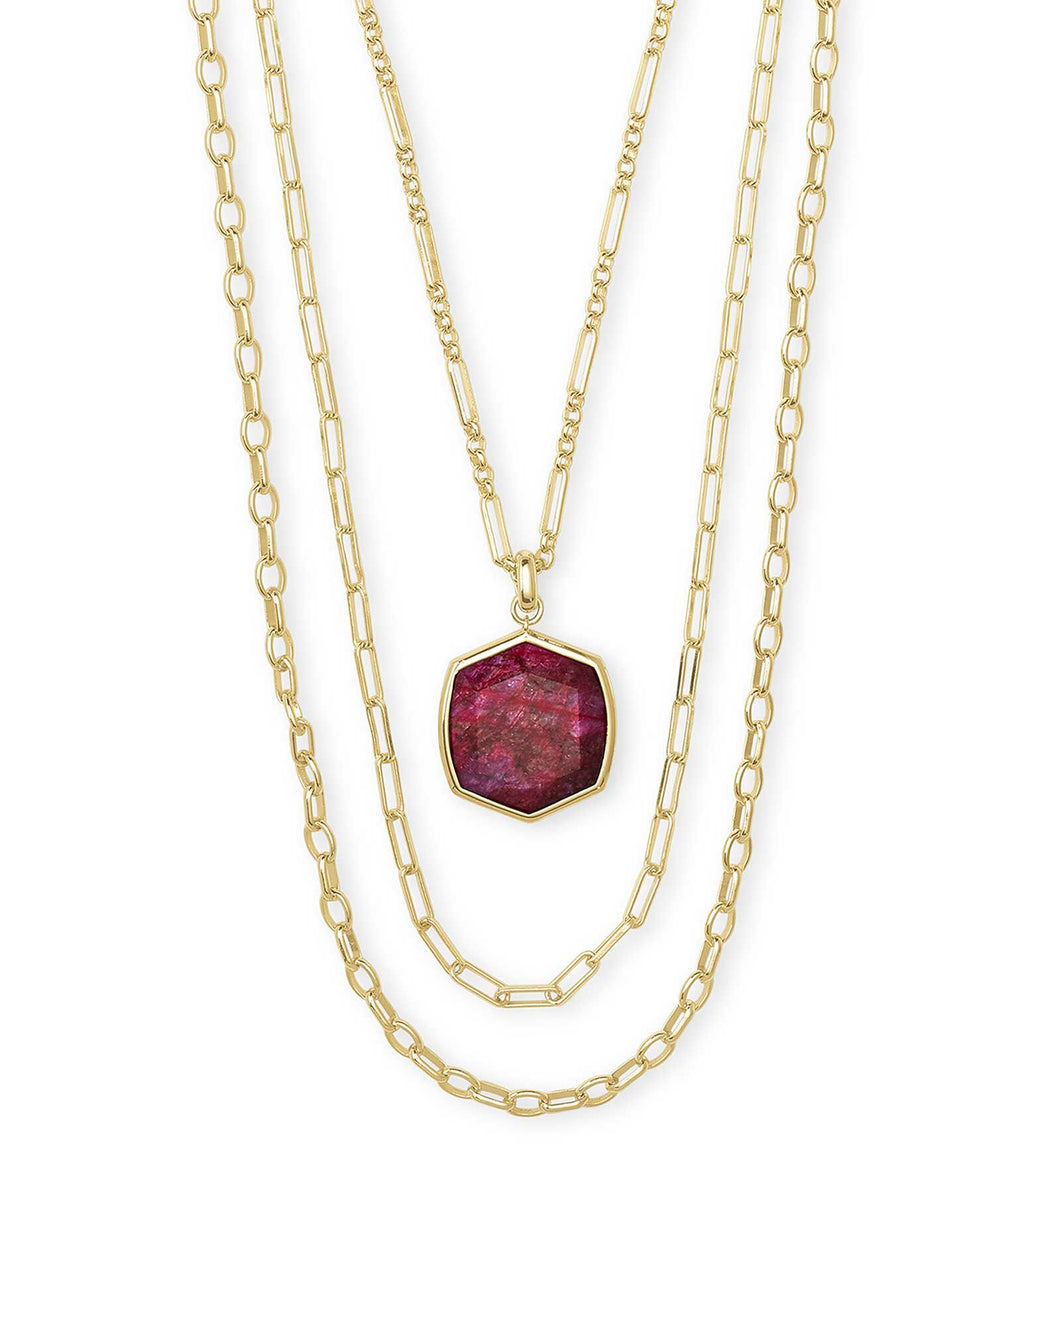 Davis Gold Multistrand Necklace